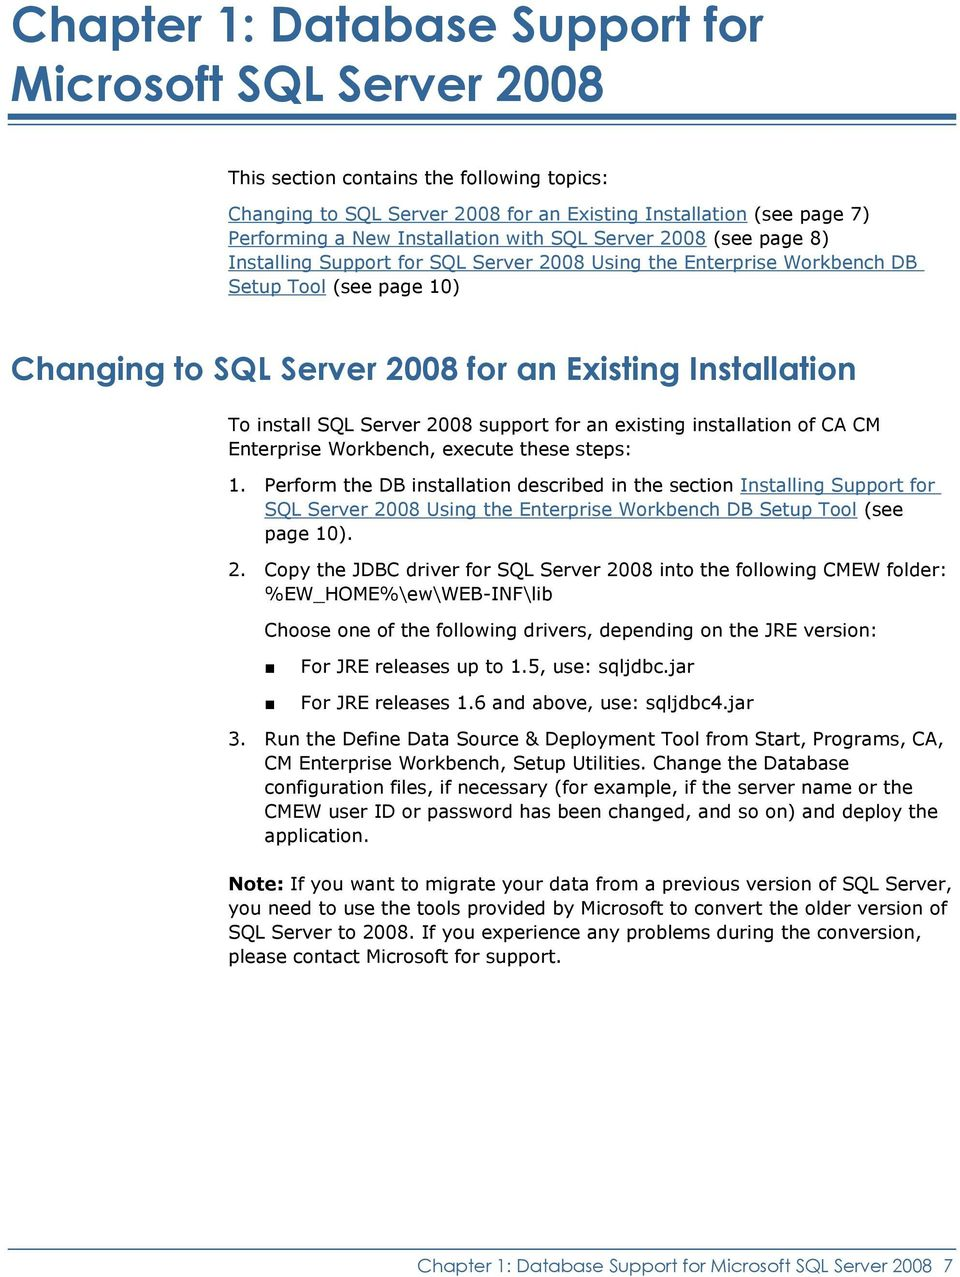 Installation To install SQL Server 2008 support for an existing installation of CA CM Enterprise Workbench, execute these steps: 1.